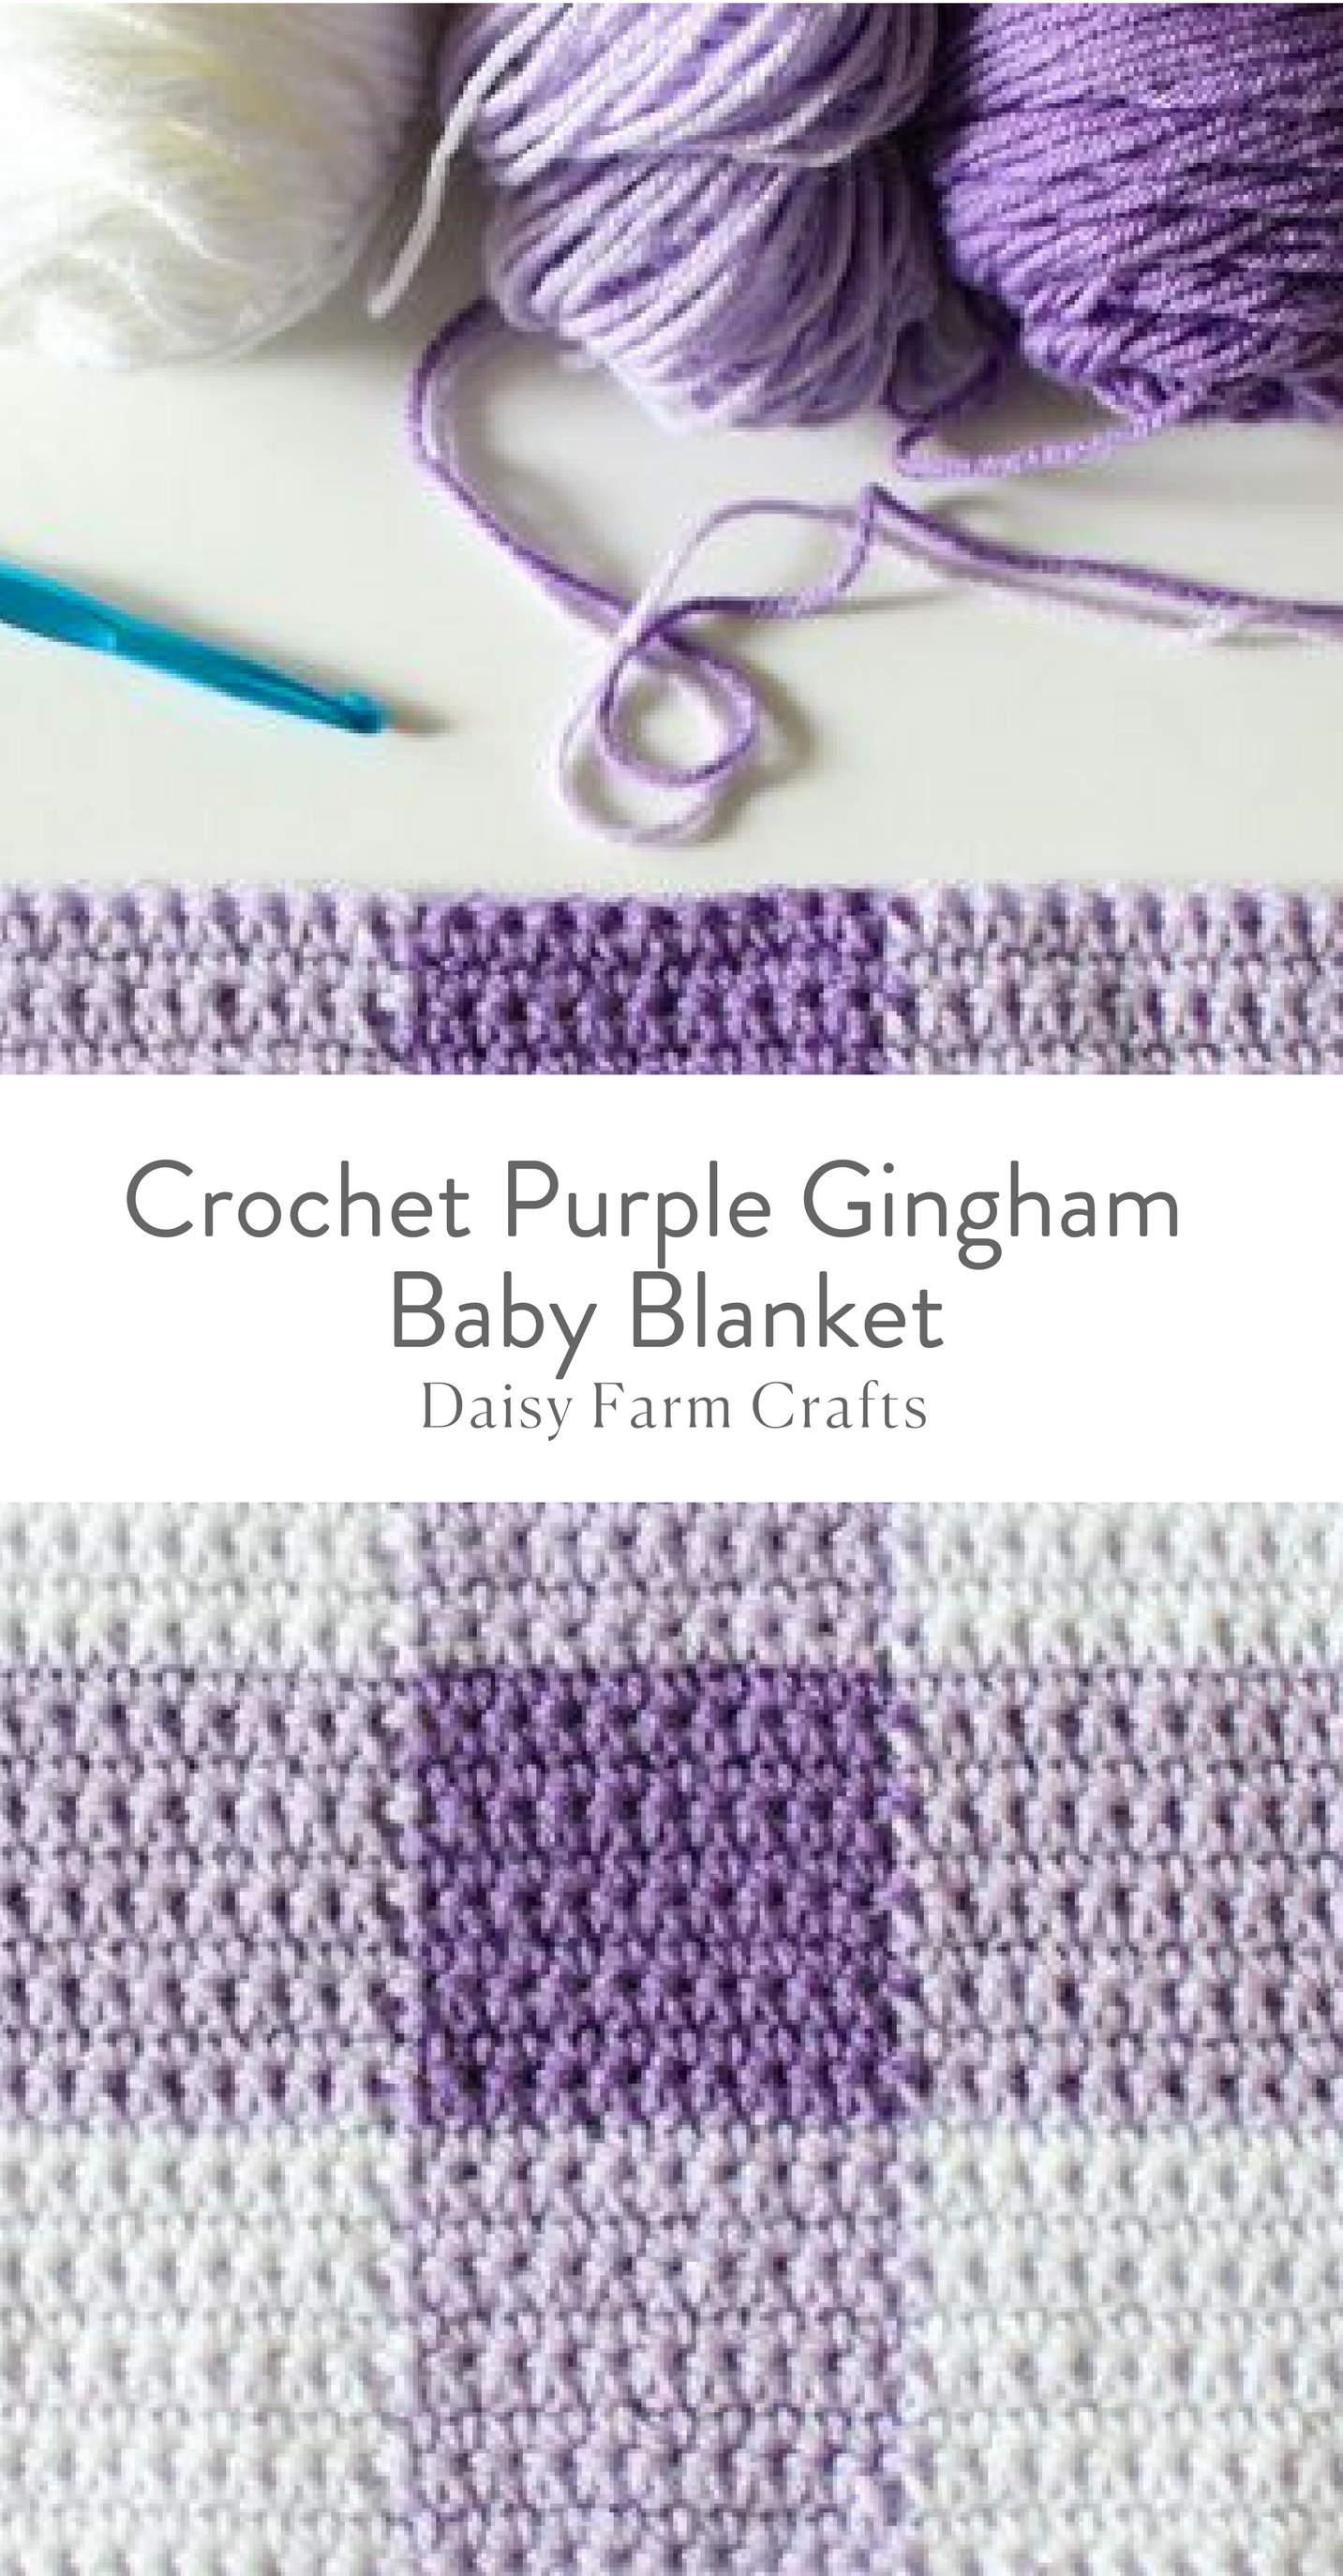 Crochet Purple Gingham Baby Blanket - Free Pattern | Crochet ...